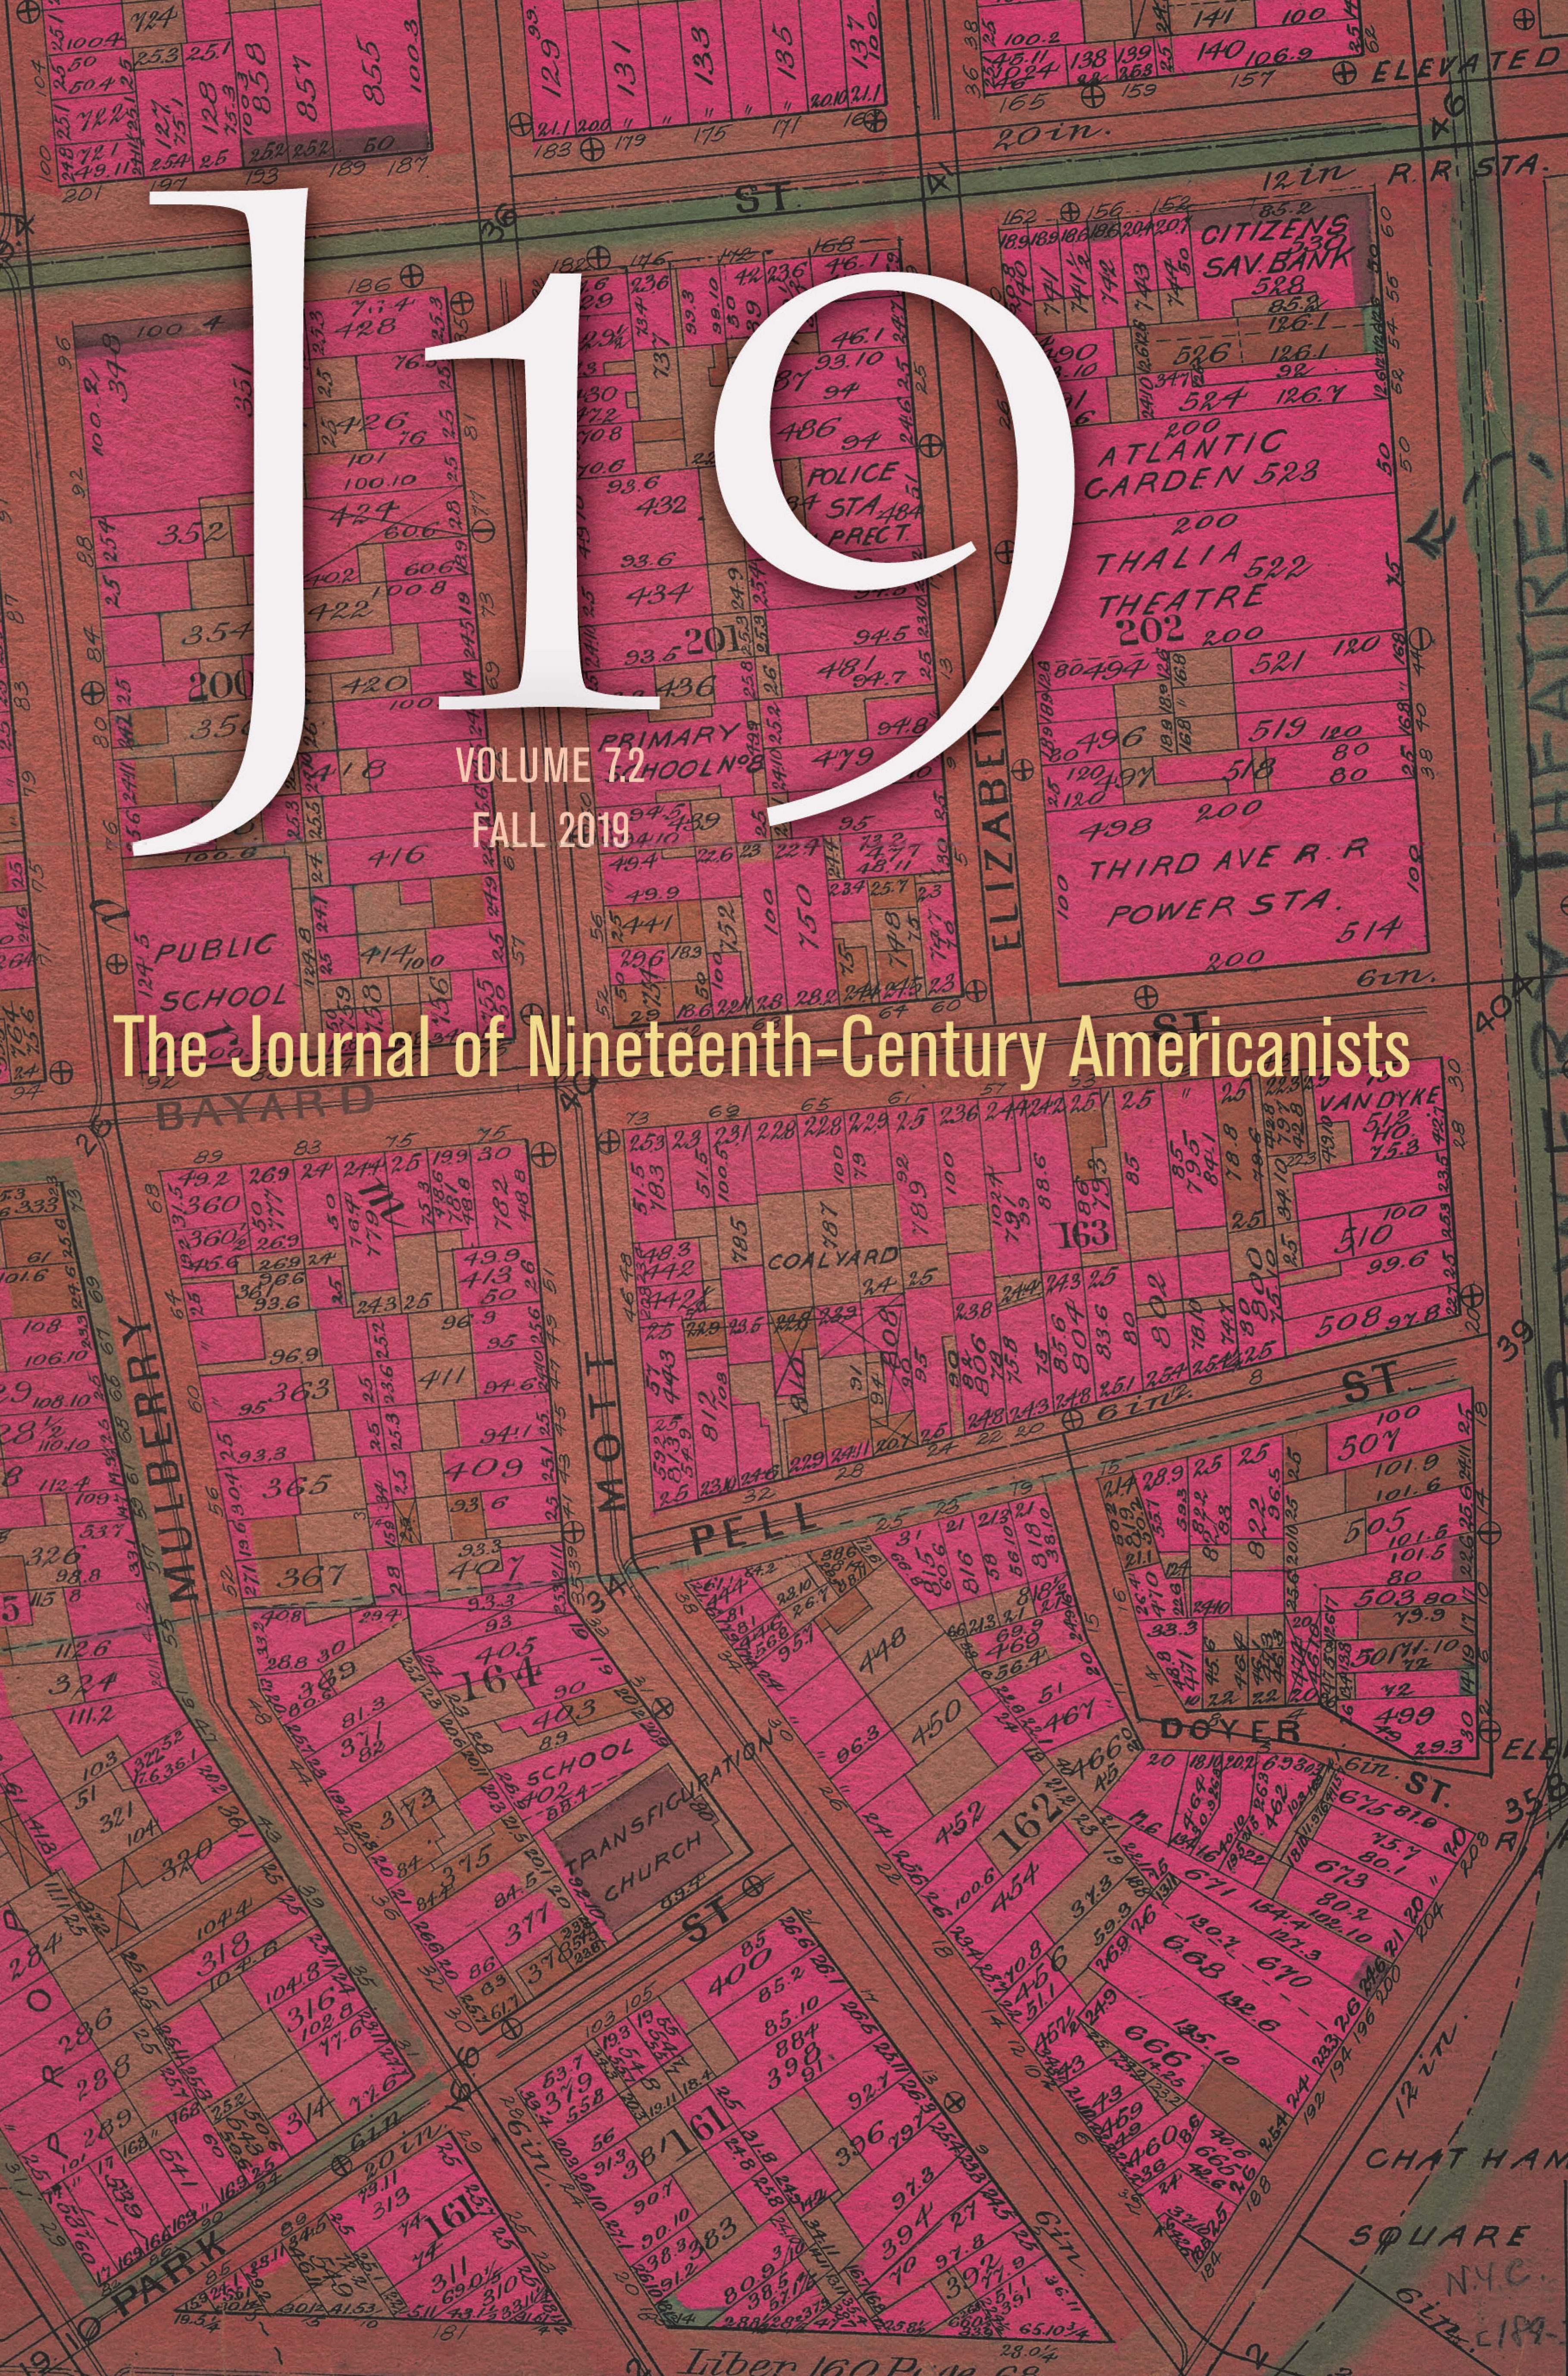 J19: The Journal of Nineteenth-Century Americanists Spring 2020 Volume 8.1